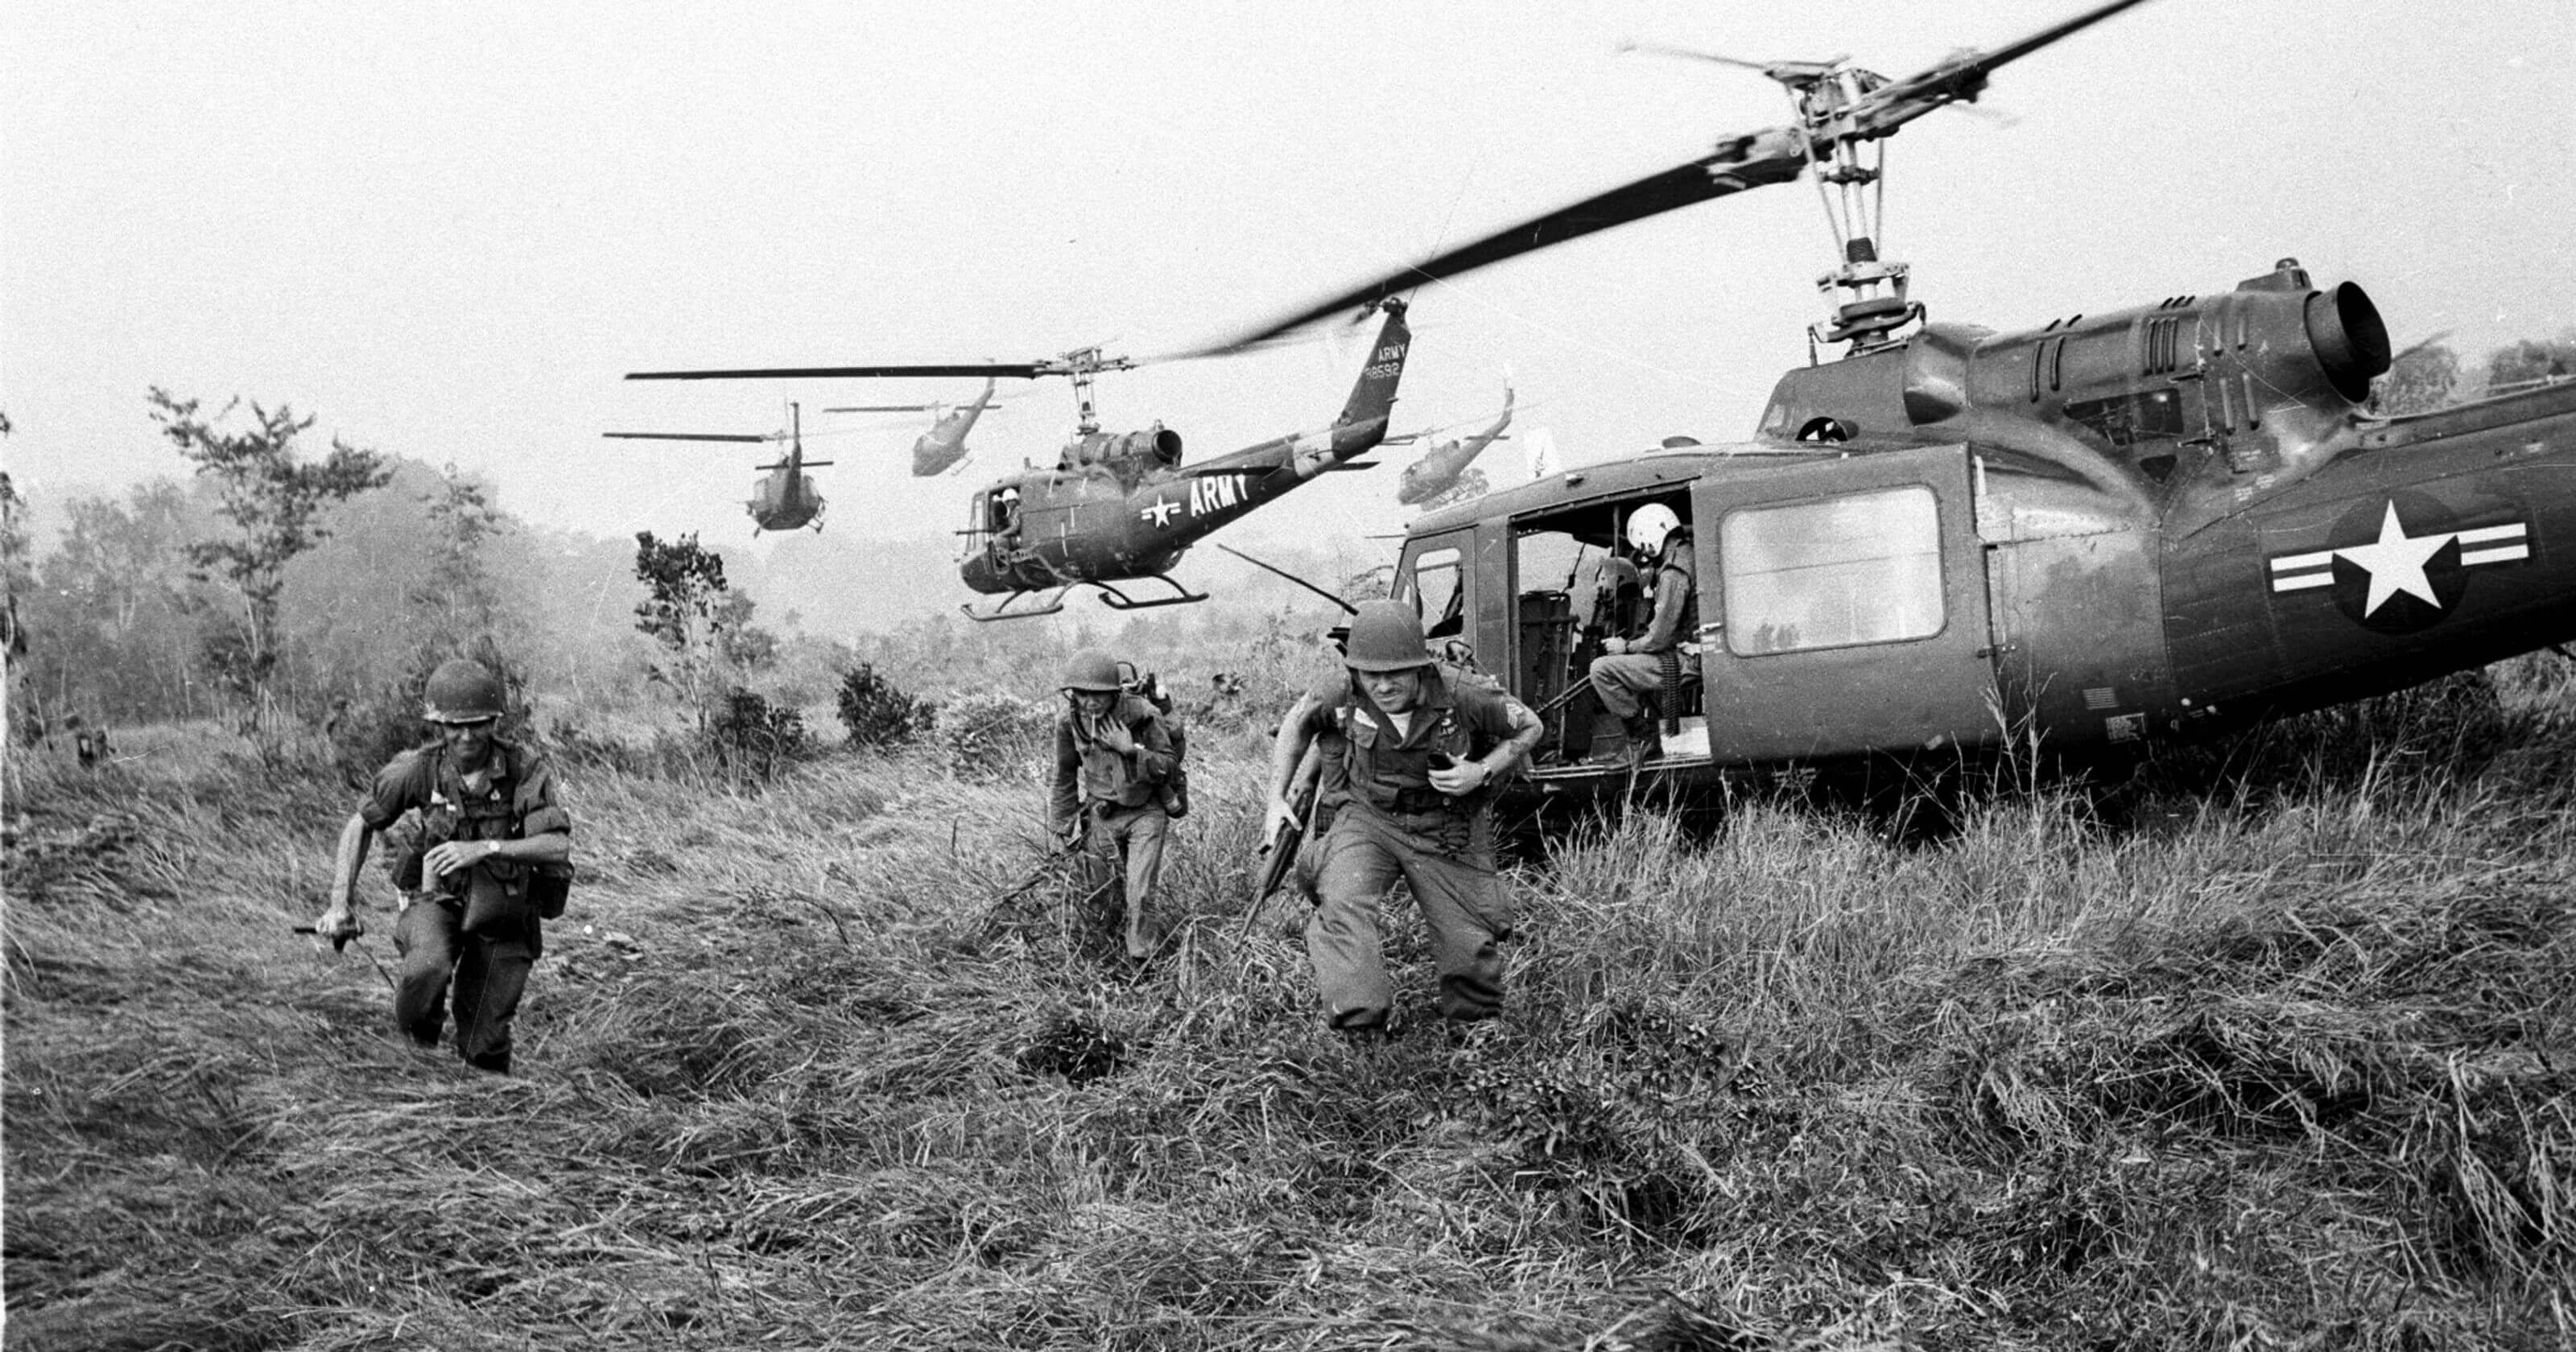 How many Vietnamese people fell down in the Vietnam War?